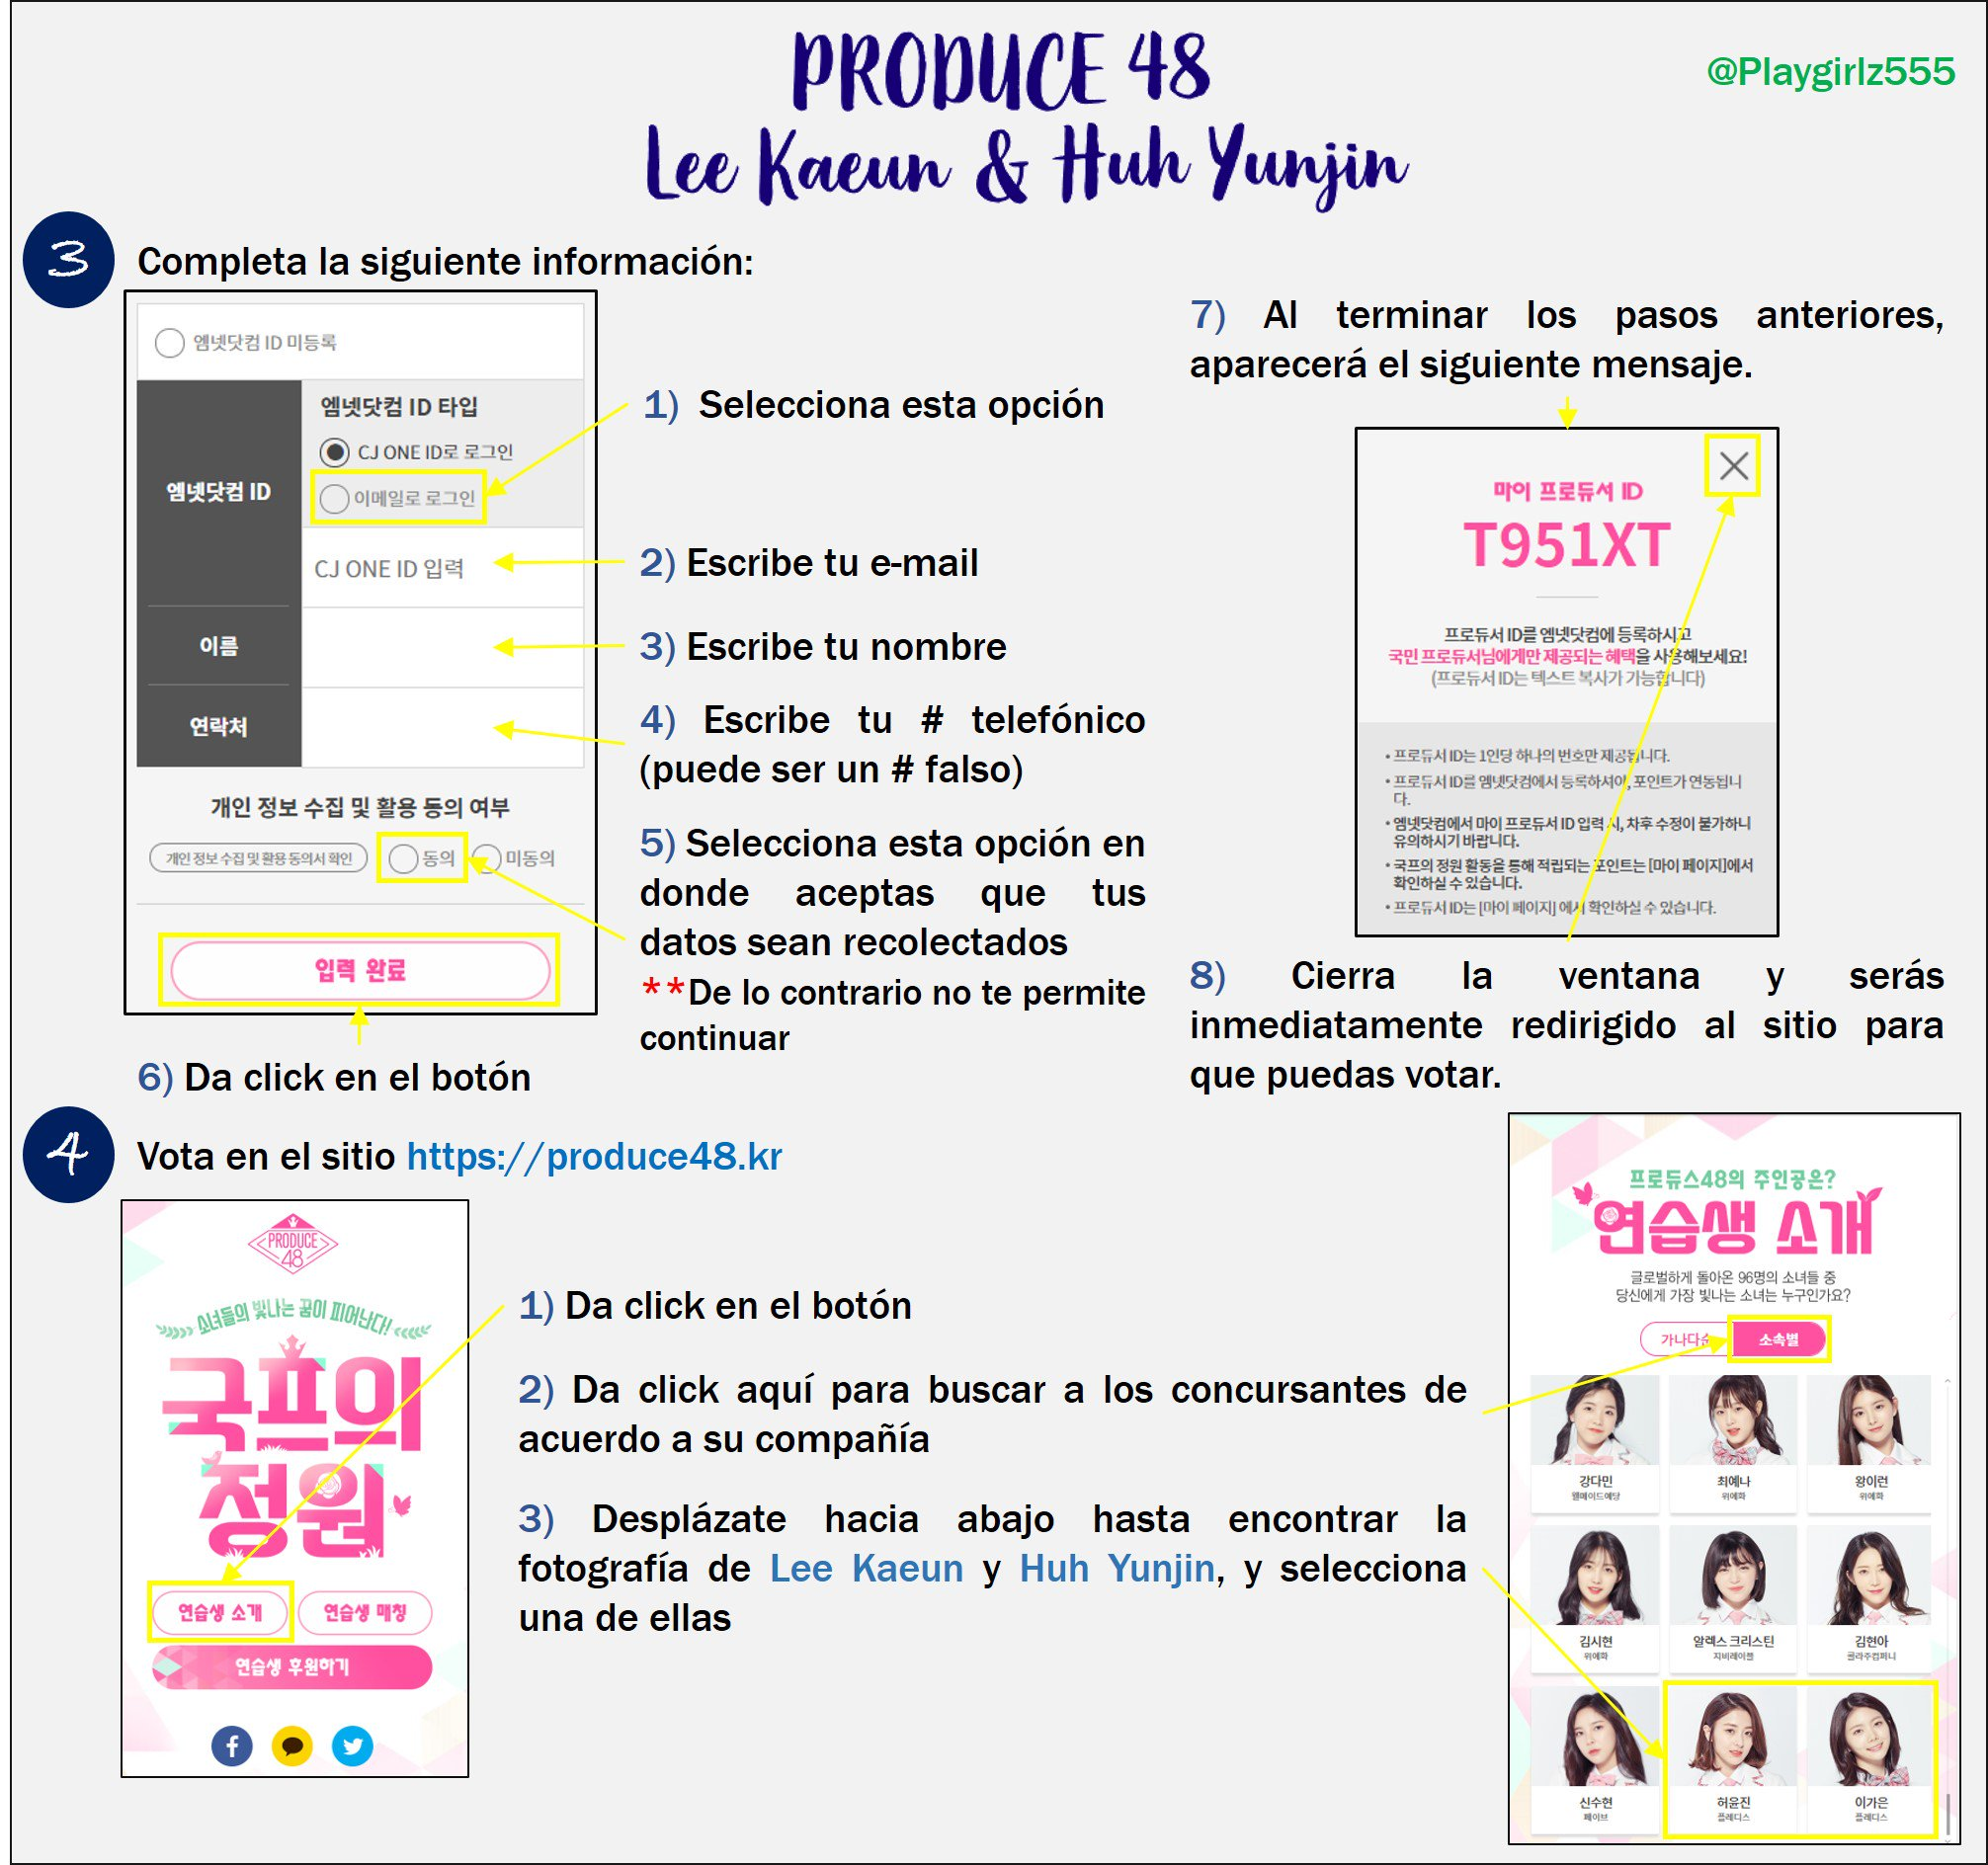 [DISCUSSION] How to Vote for Kaeun and Yoonjin on Produce 48 Nation's Producer Garden French14